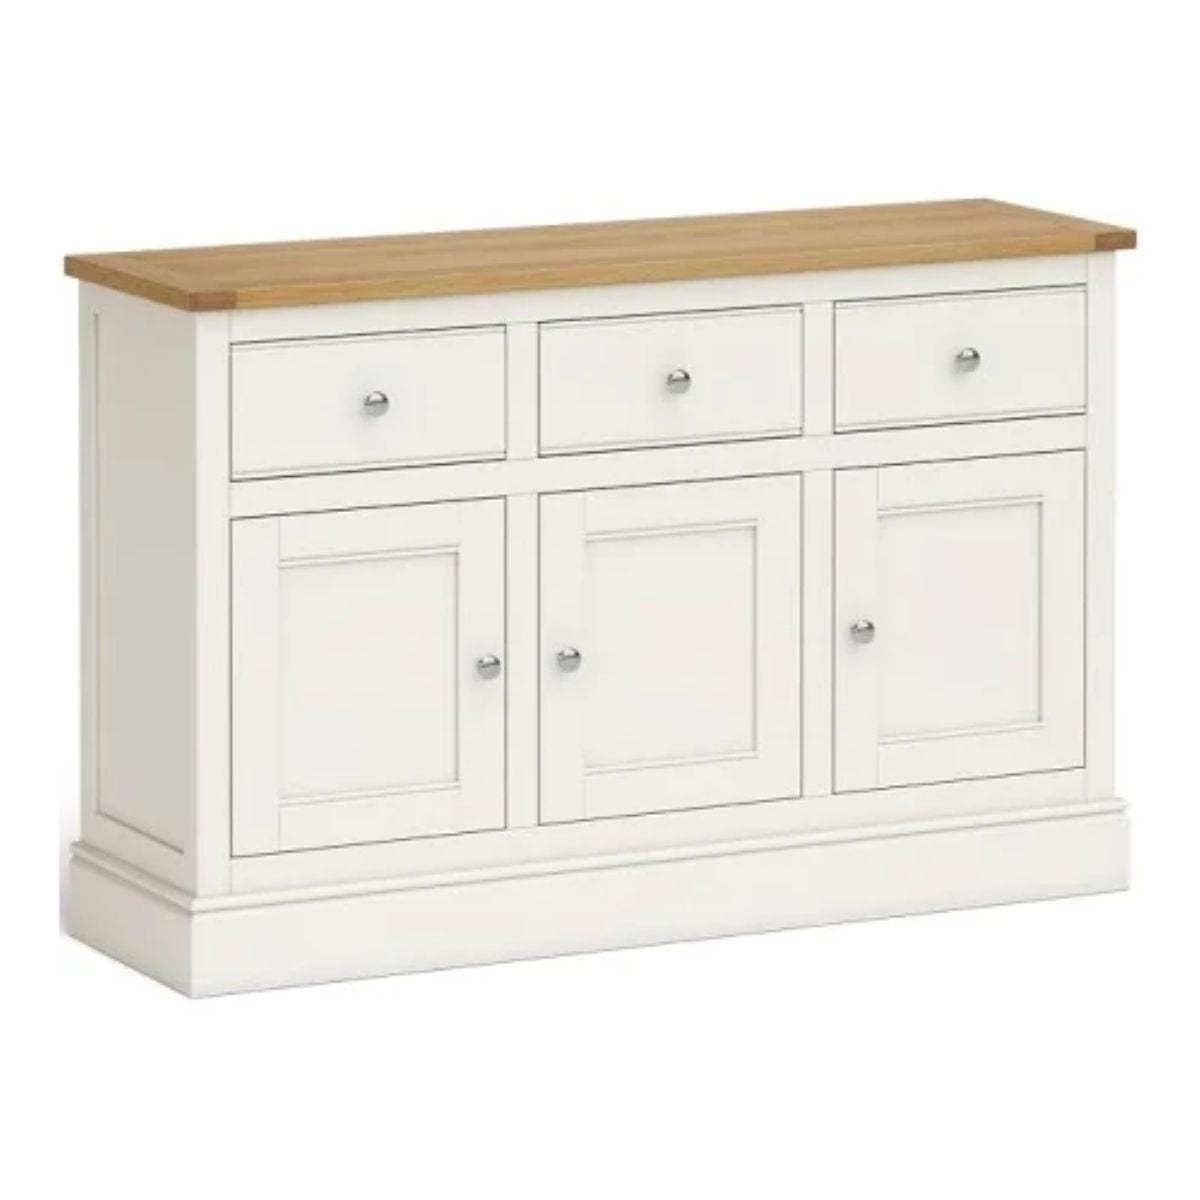 Charlie Large Ivory and Oak Sideboard